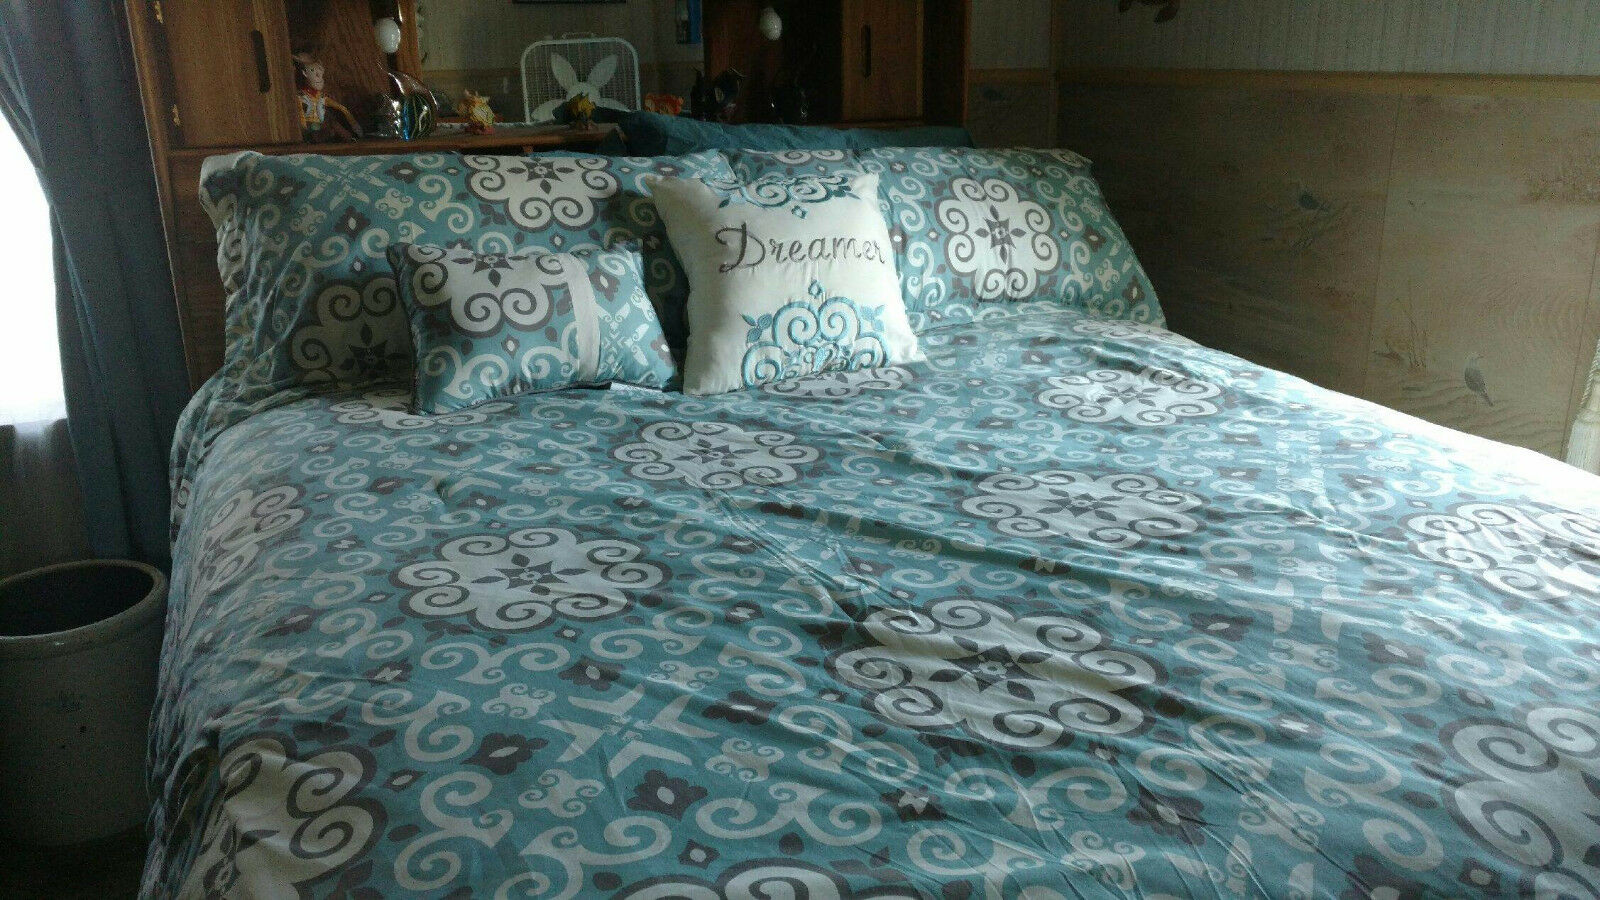 5PC Home Fashion King Size Bed Set, Comforter, 2 Shams, 2 Accent Pillows, EC